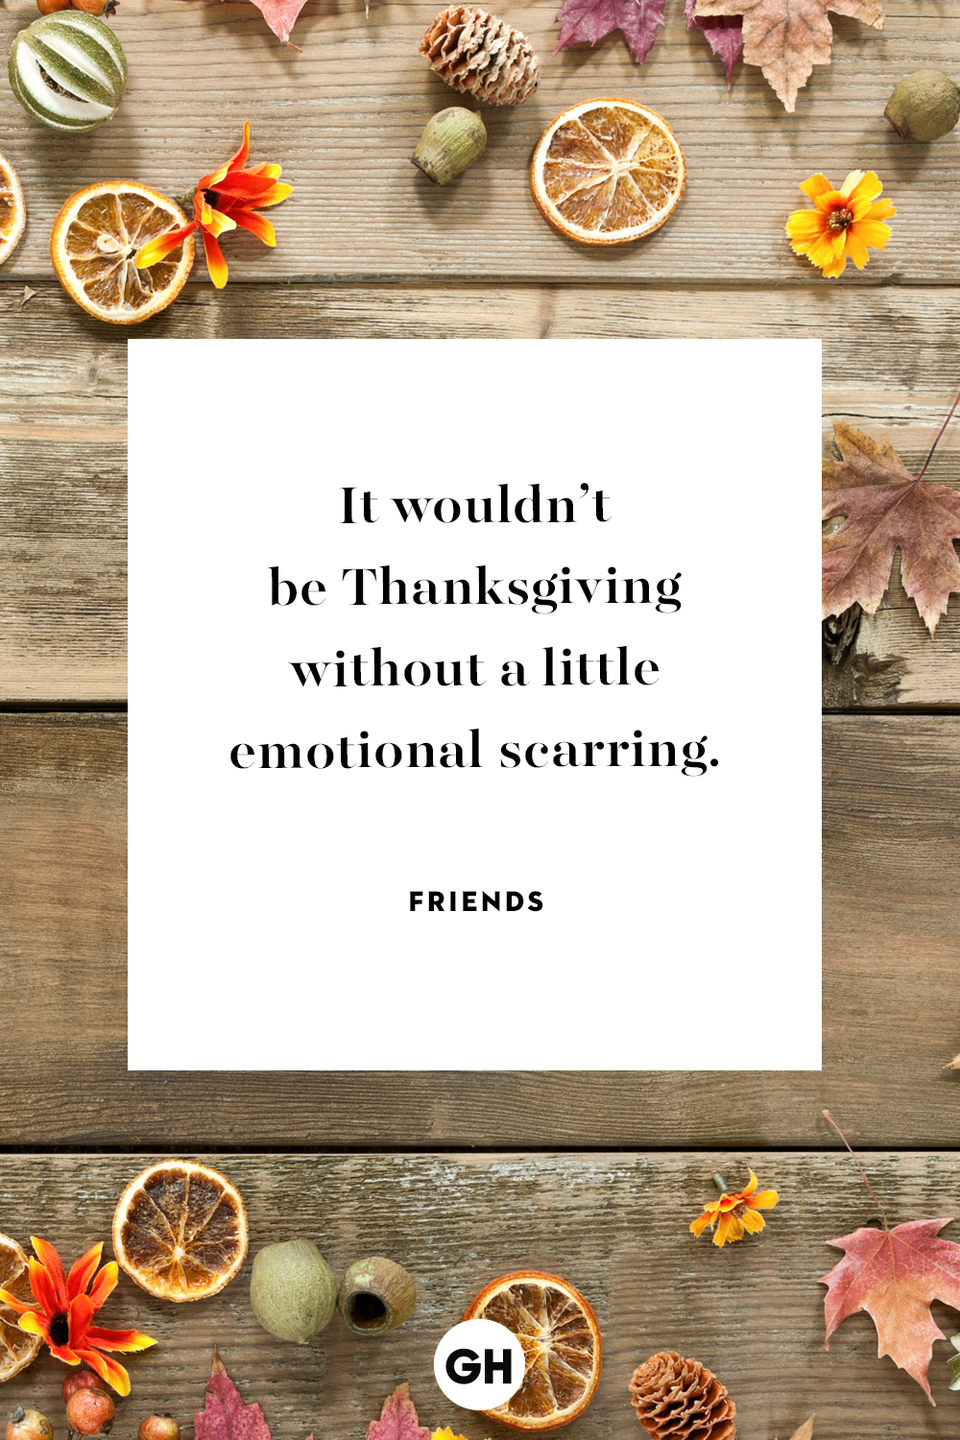 <p>It wouldn't be Thanksgiving without a little emotional scarring.</p>